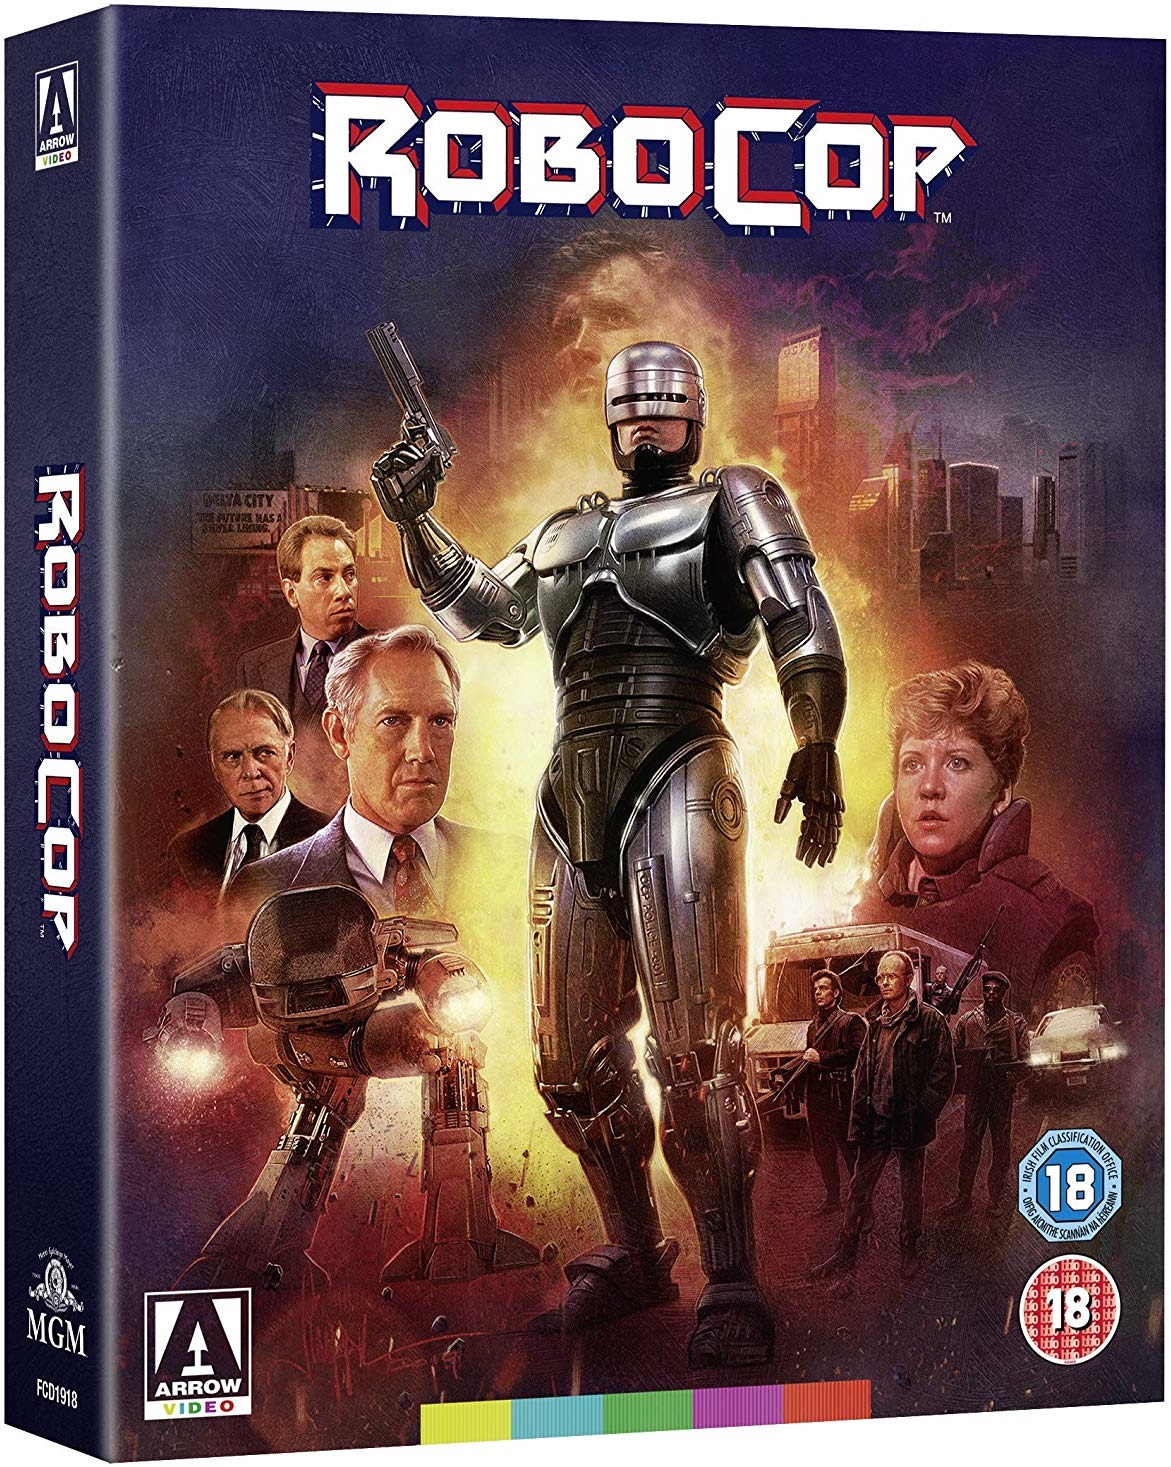 Robocop Arrow Video Cover